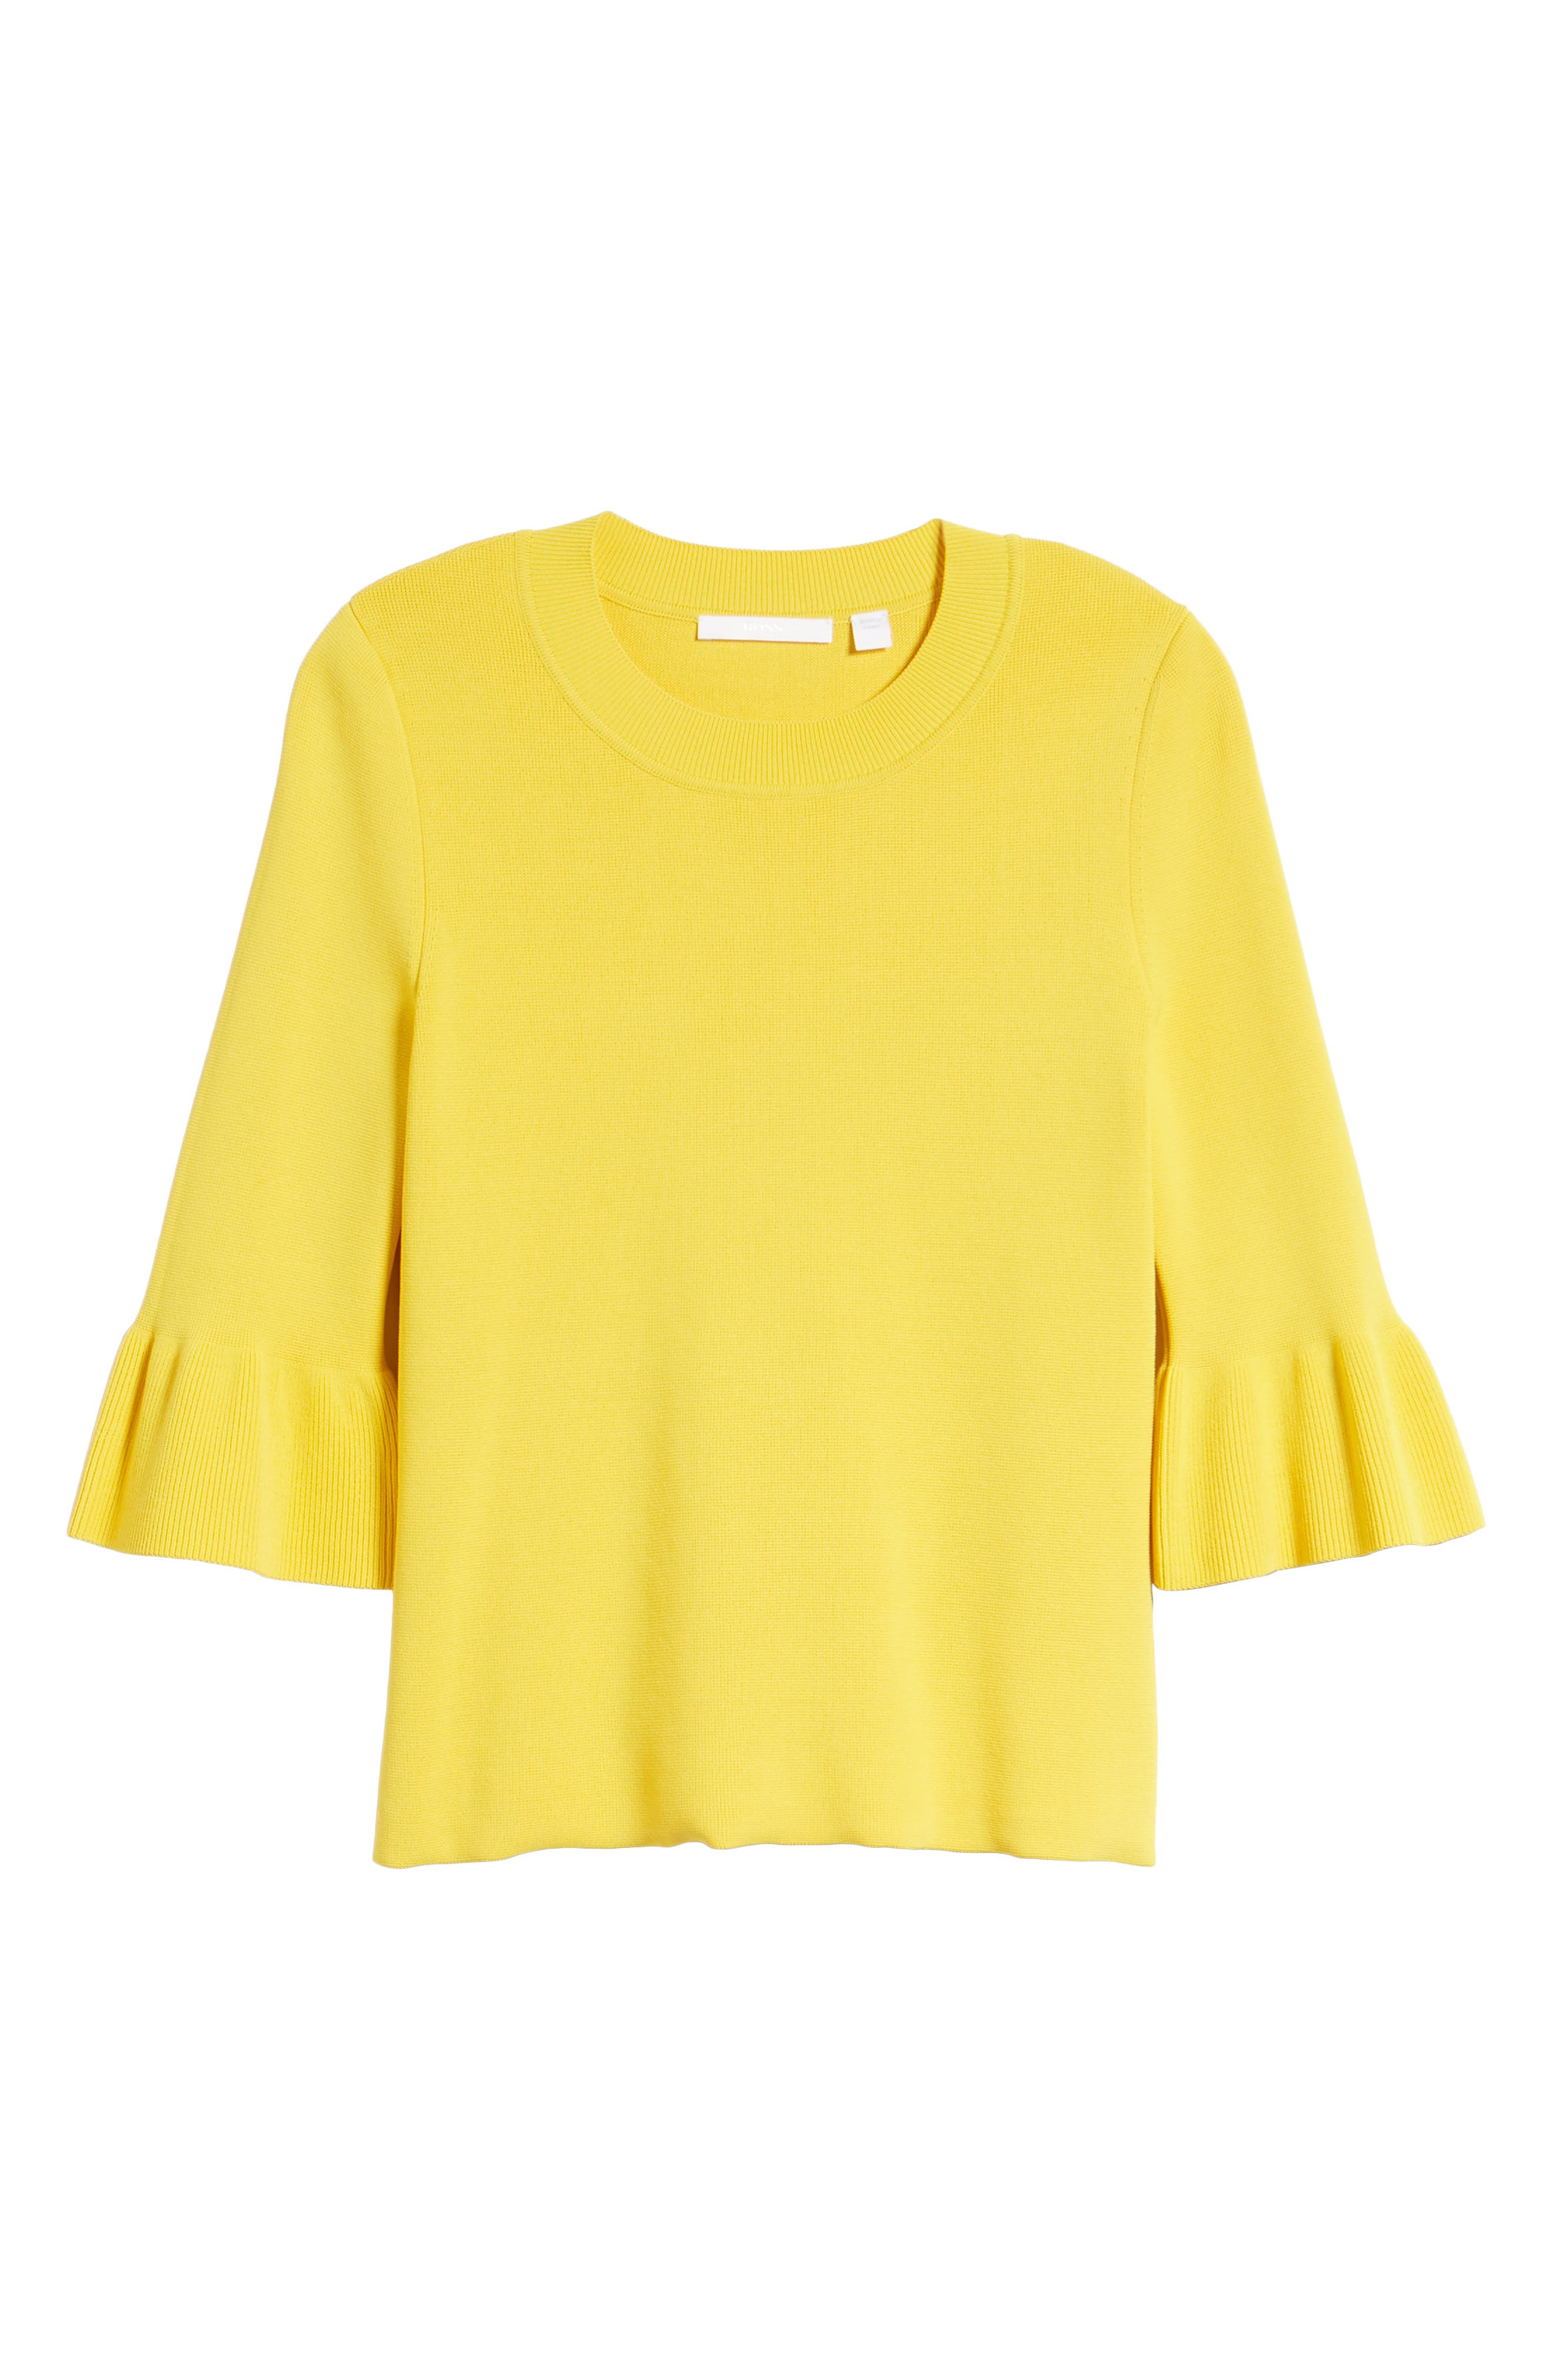 Fenella Ruffle Sleeve Sweater,                             Alternate thumbnail 6, color,                             Sun Yellow